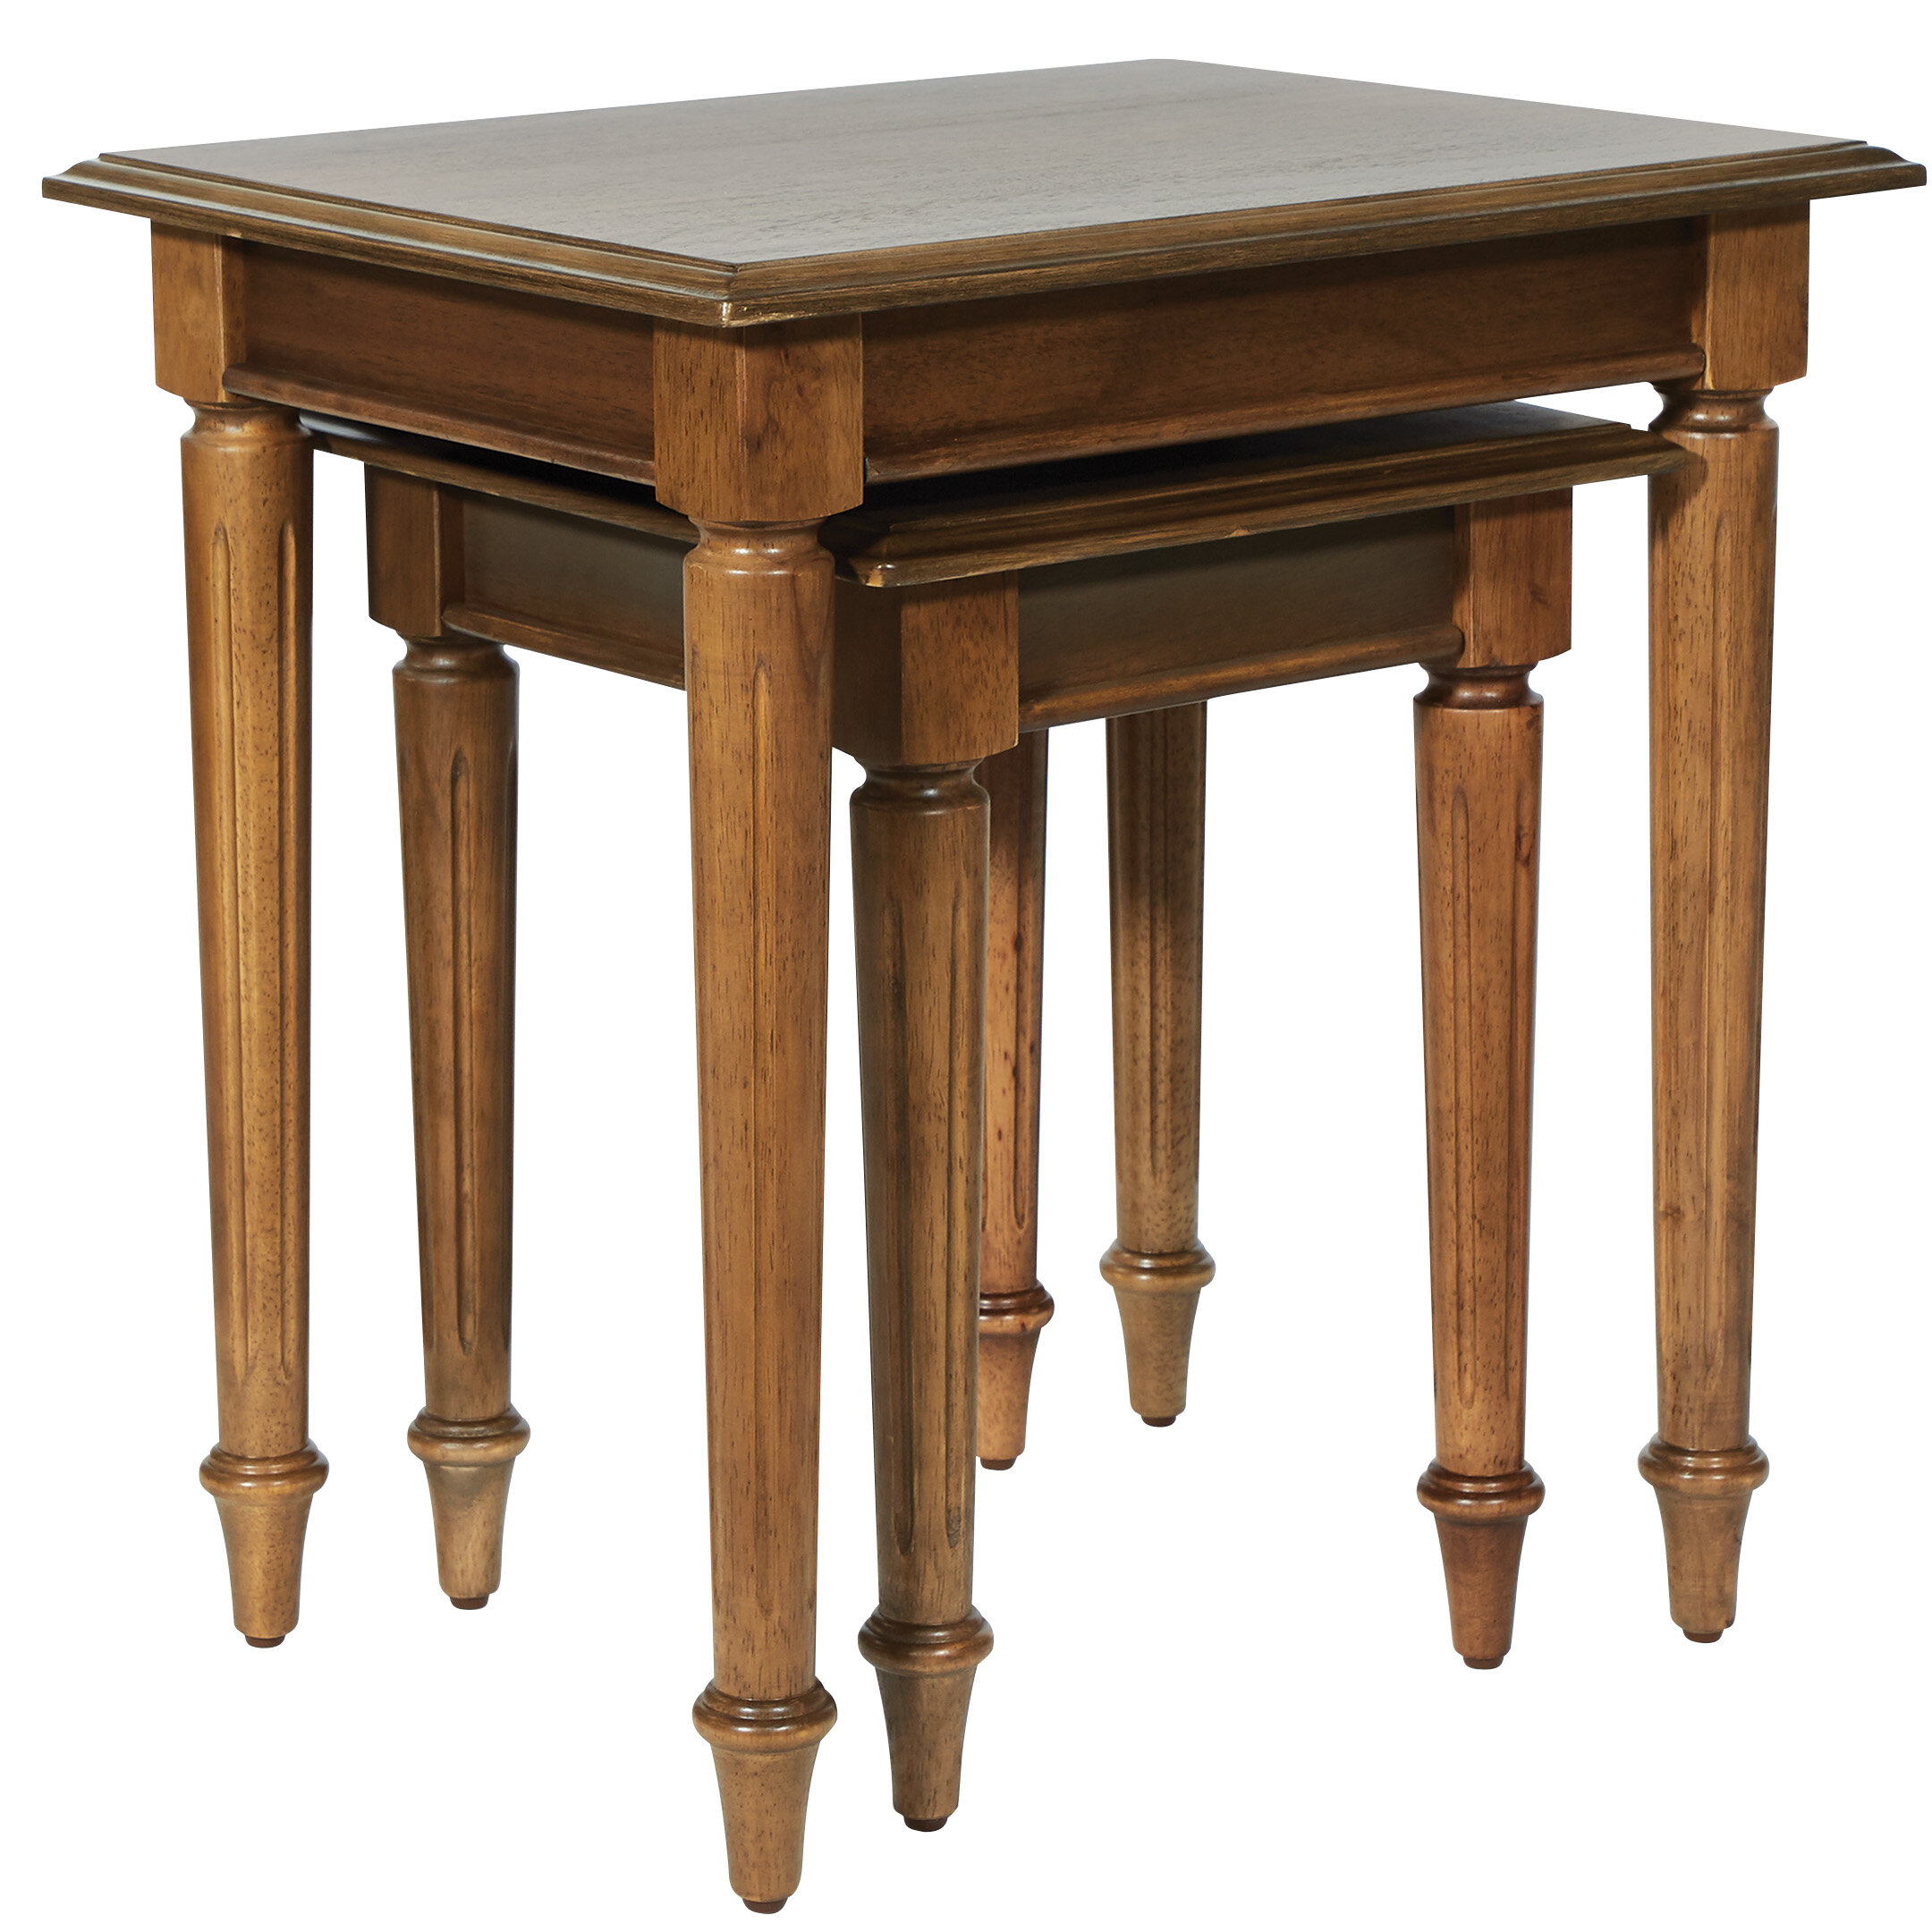 Canora Grey Nesting Tables You Ll Love In 2021 Wayfair